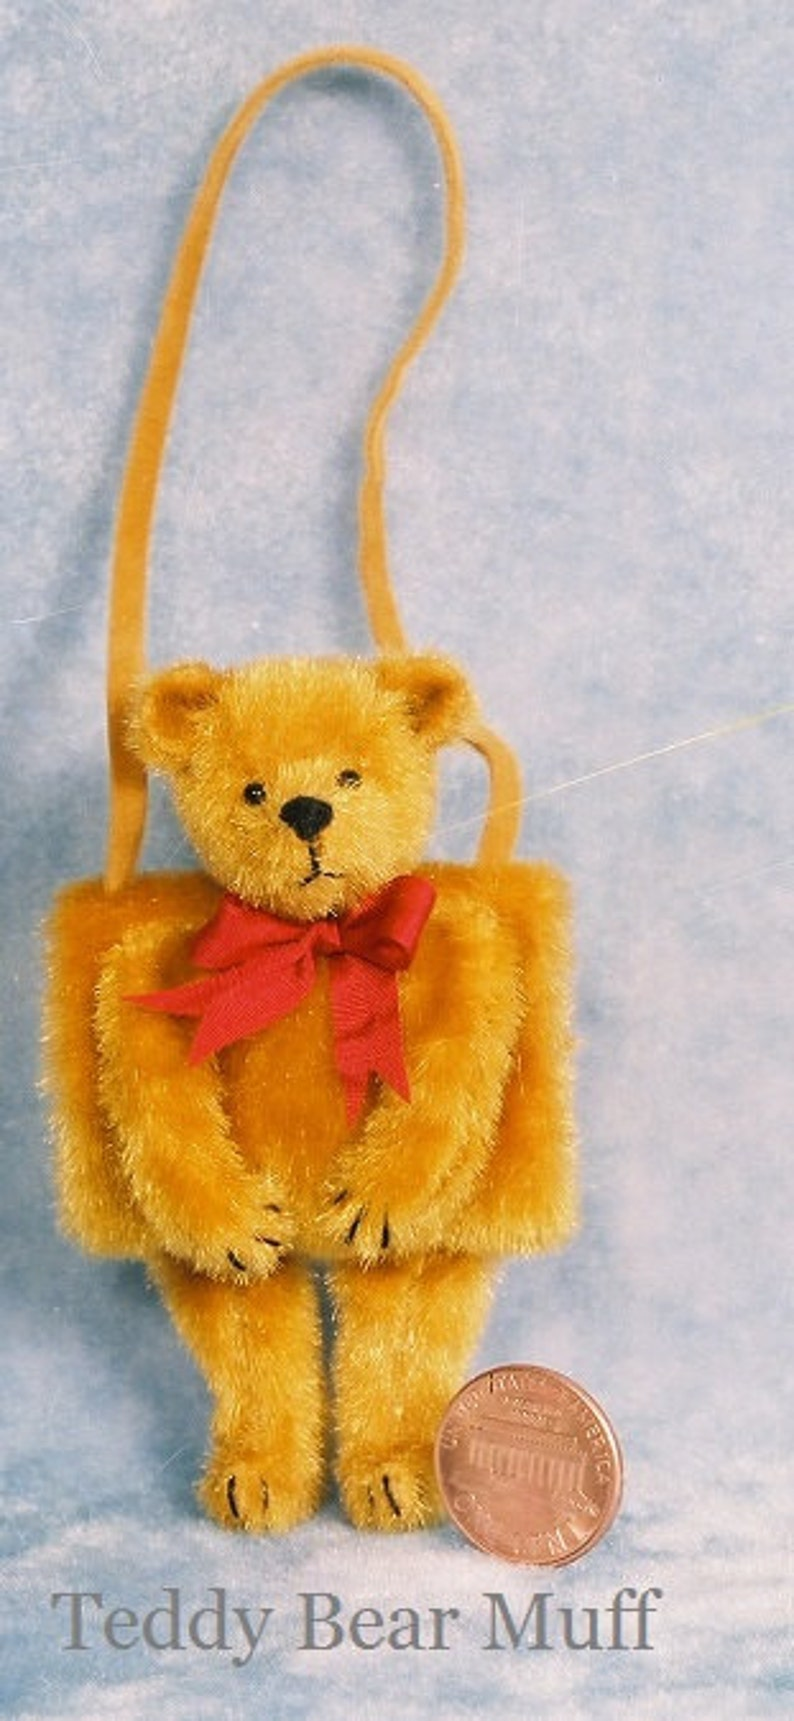 Teddy Bear Muff Miniature Teddy Bear Kit  Pattern  by Emily image 0